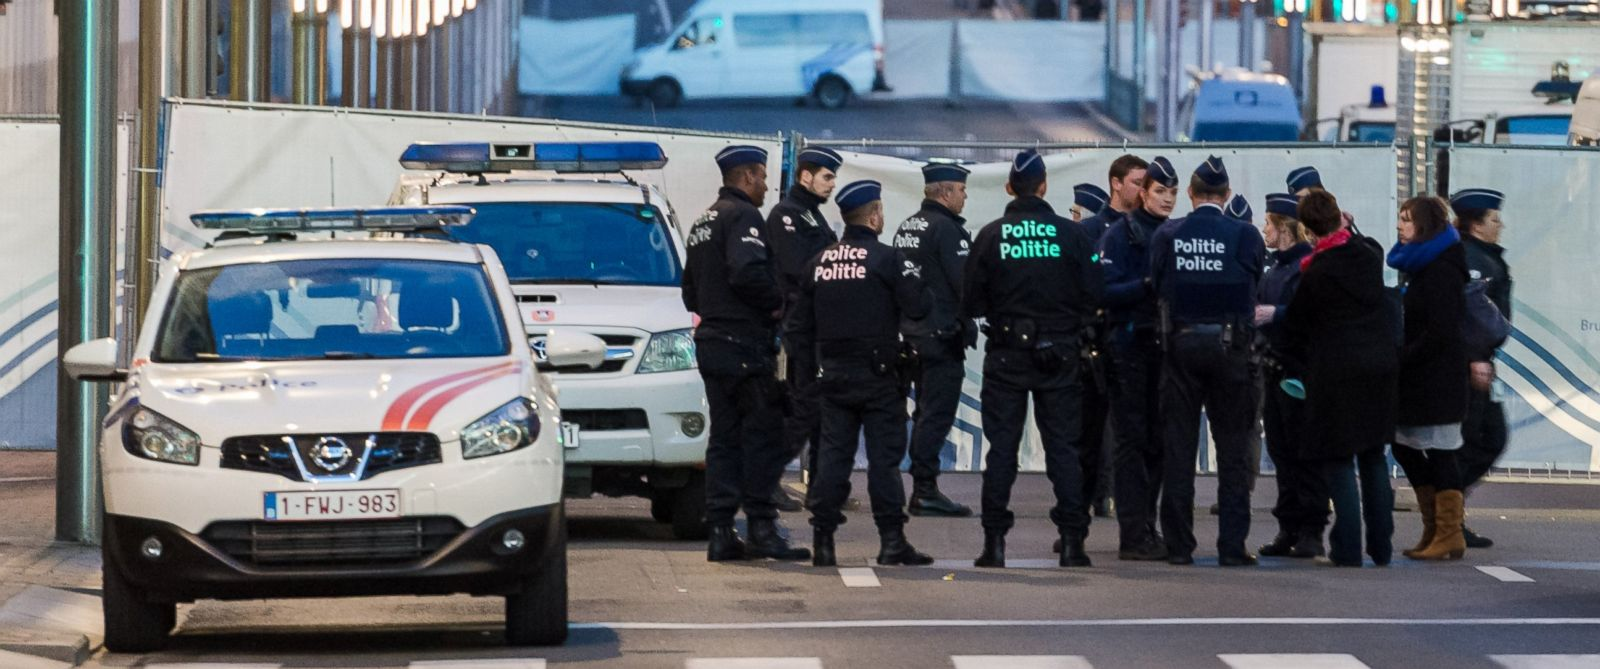 PHOTO: Police stand outside a metro station after an explosion in Brussels on Tuesday, March 22, 2016. Geert Vanden Wijngaert/AP Photo